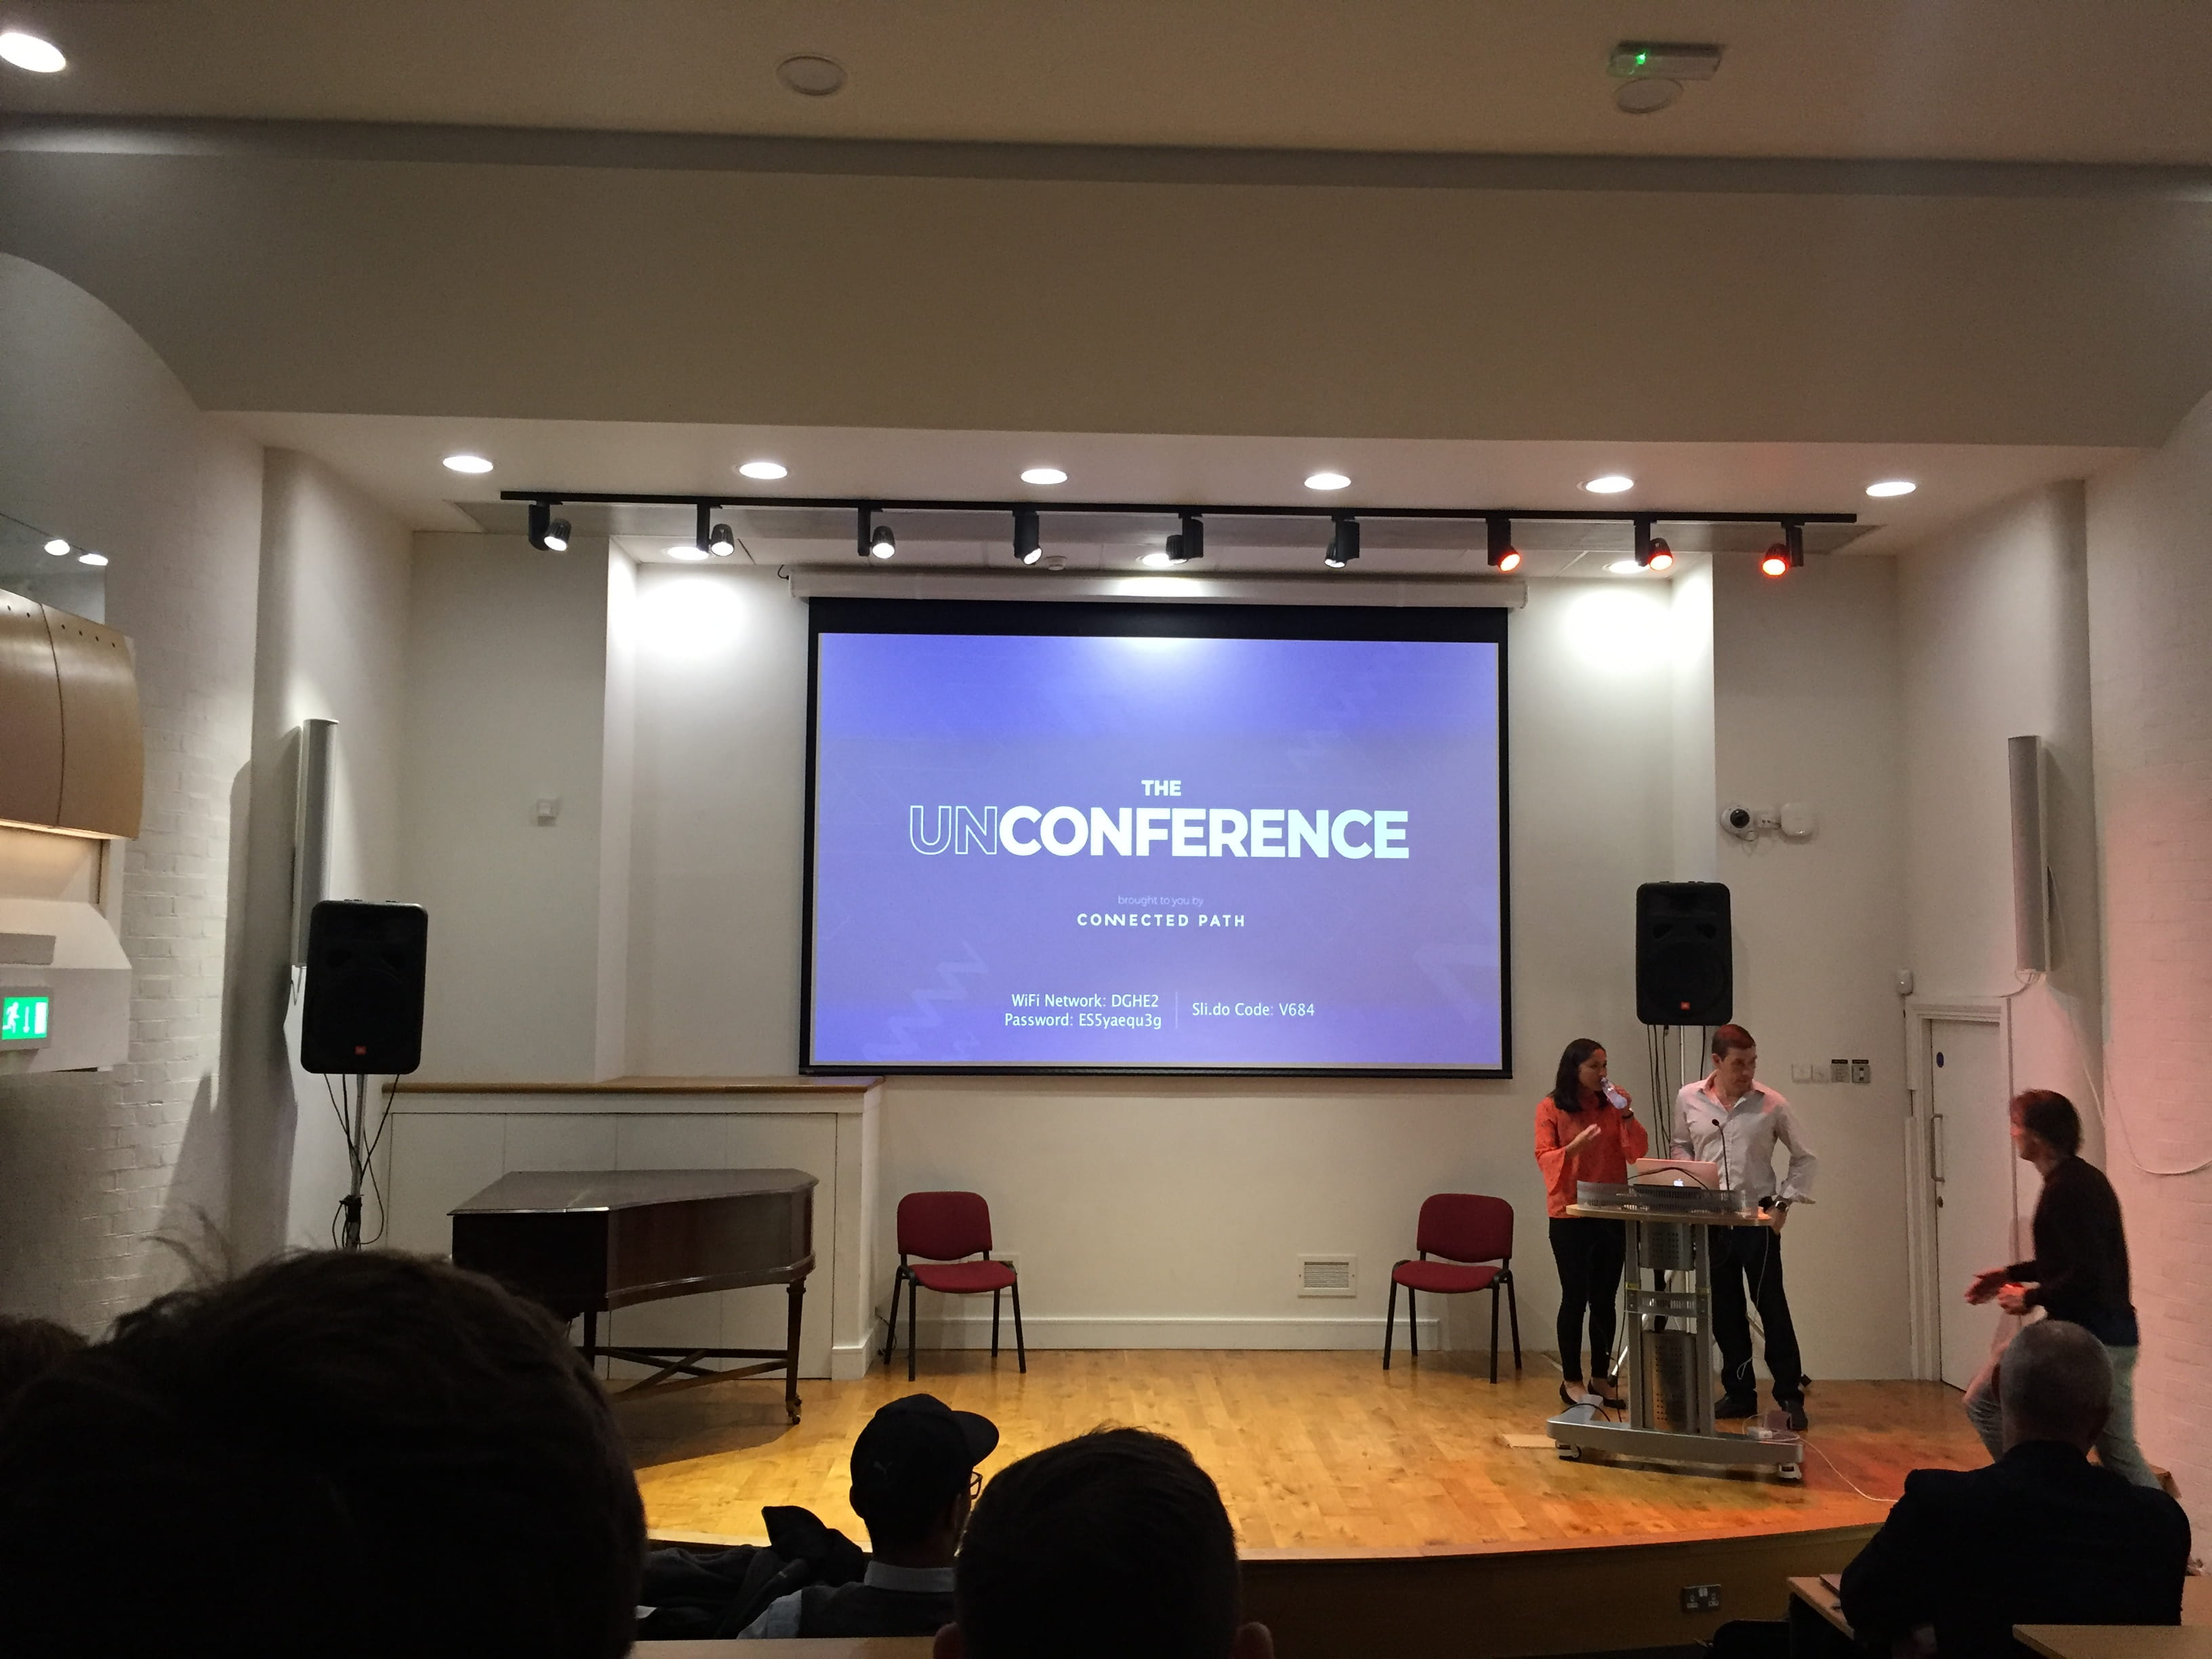 The Unconference